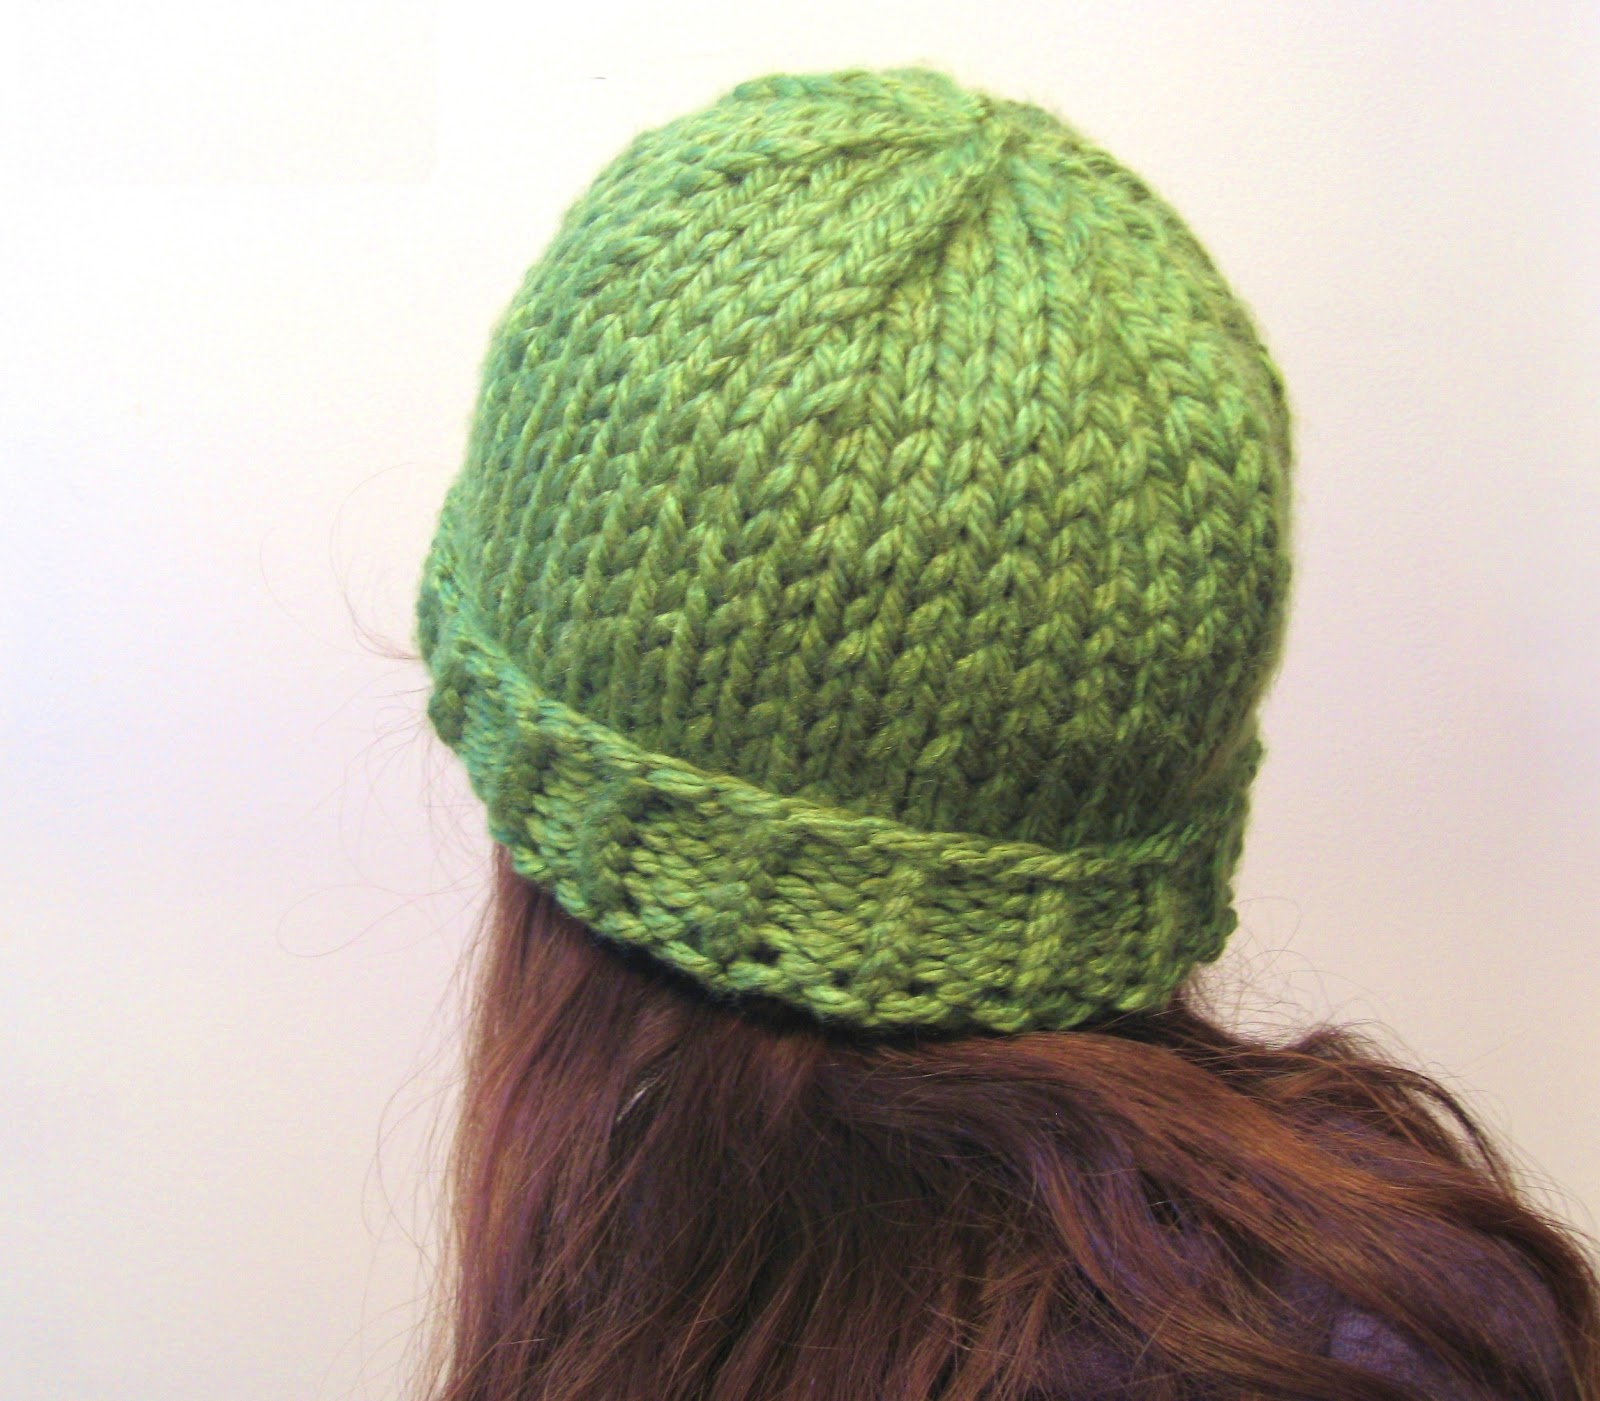 Knitting Patterns Free Beanie Hats : megan E sass handknits: Free Knitting Pattern: Easy Chunky ...